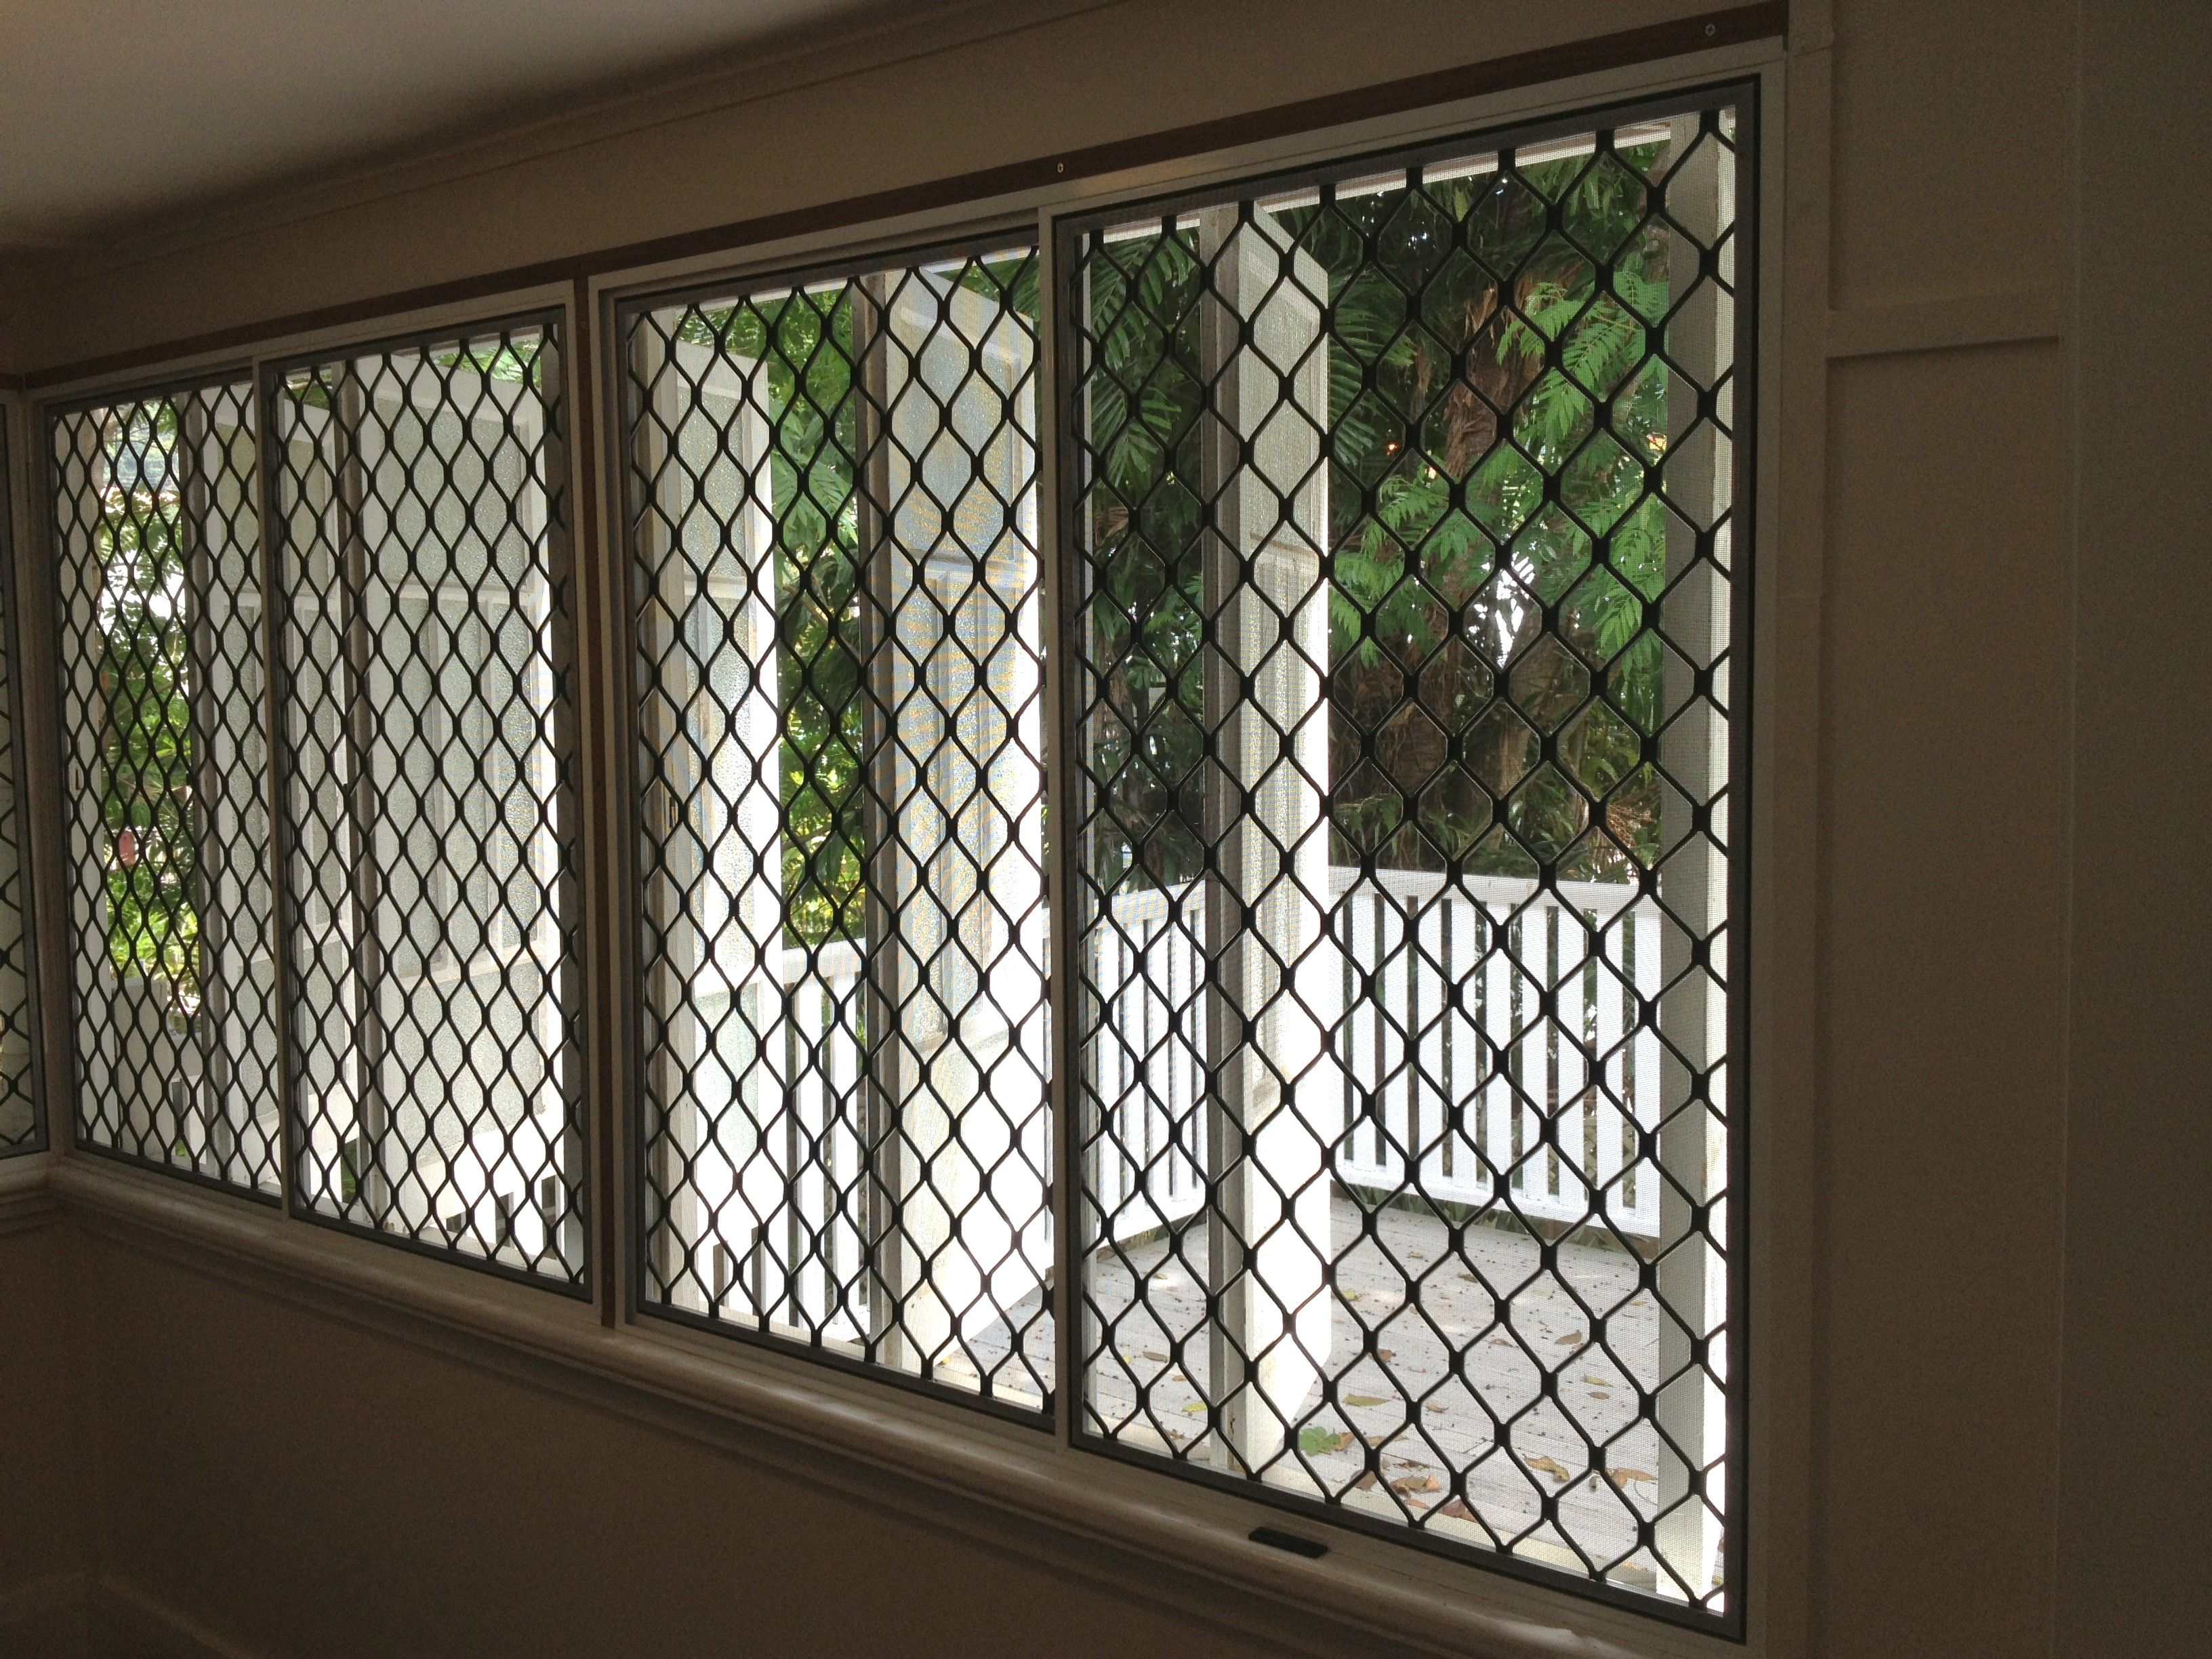 Queenslander Push Out Windows With Security Screens